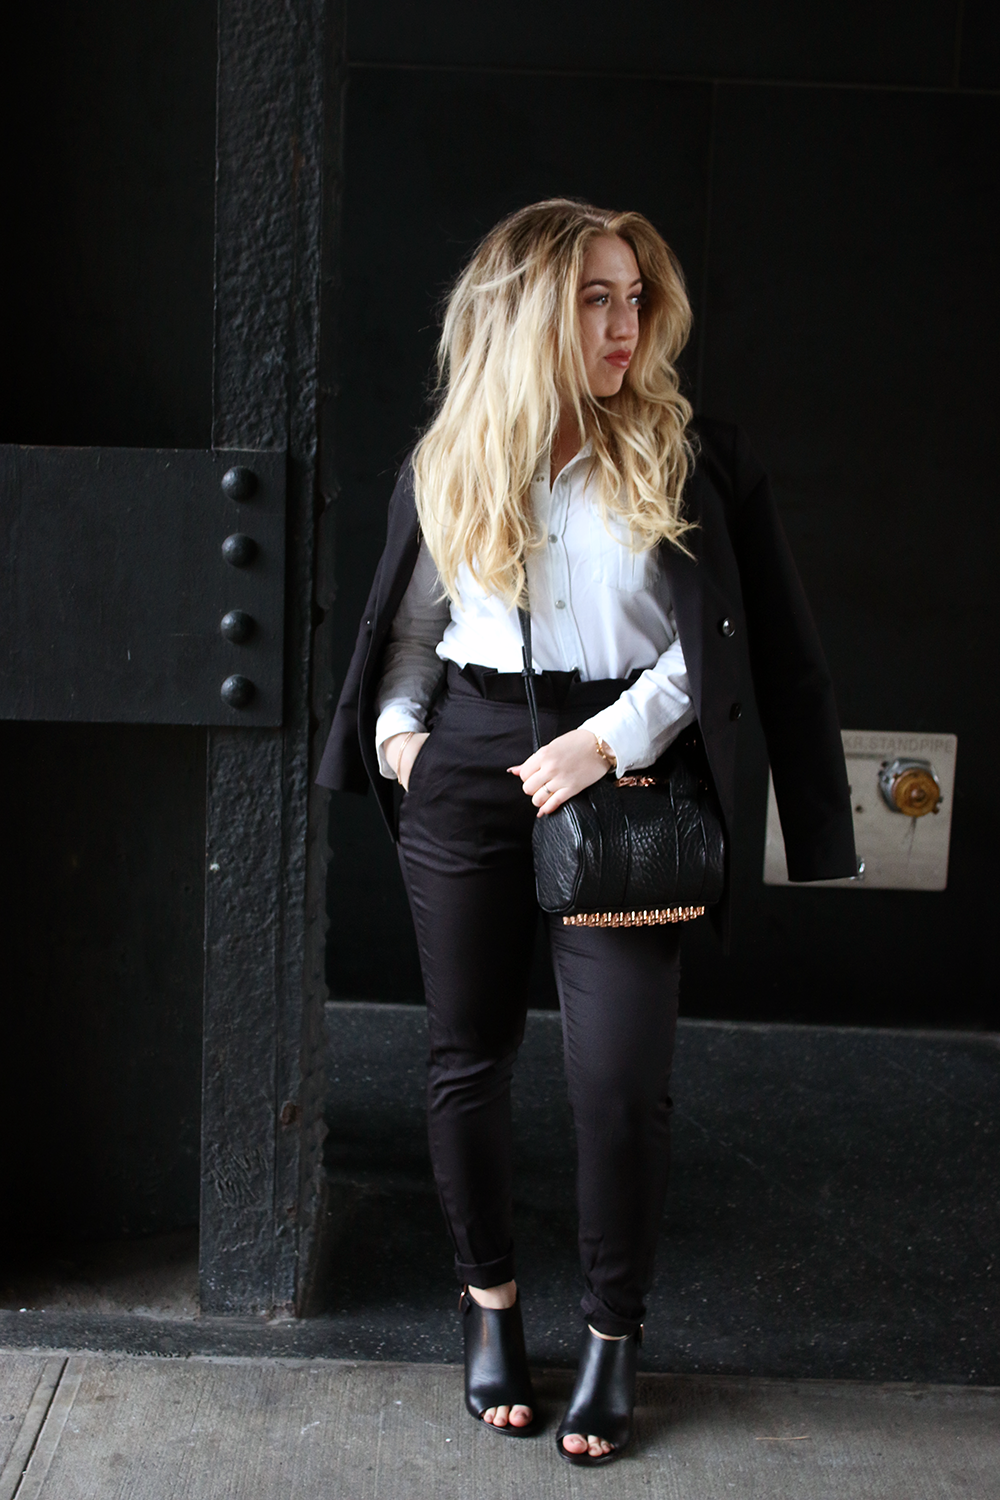 OUTFIT OF THE DAY | Alexander Wang